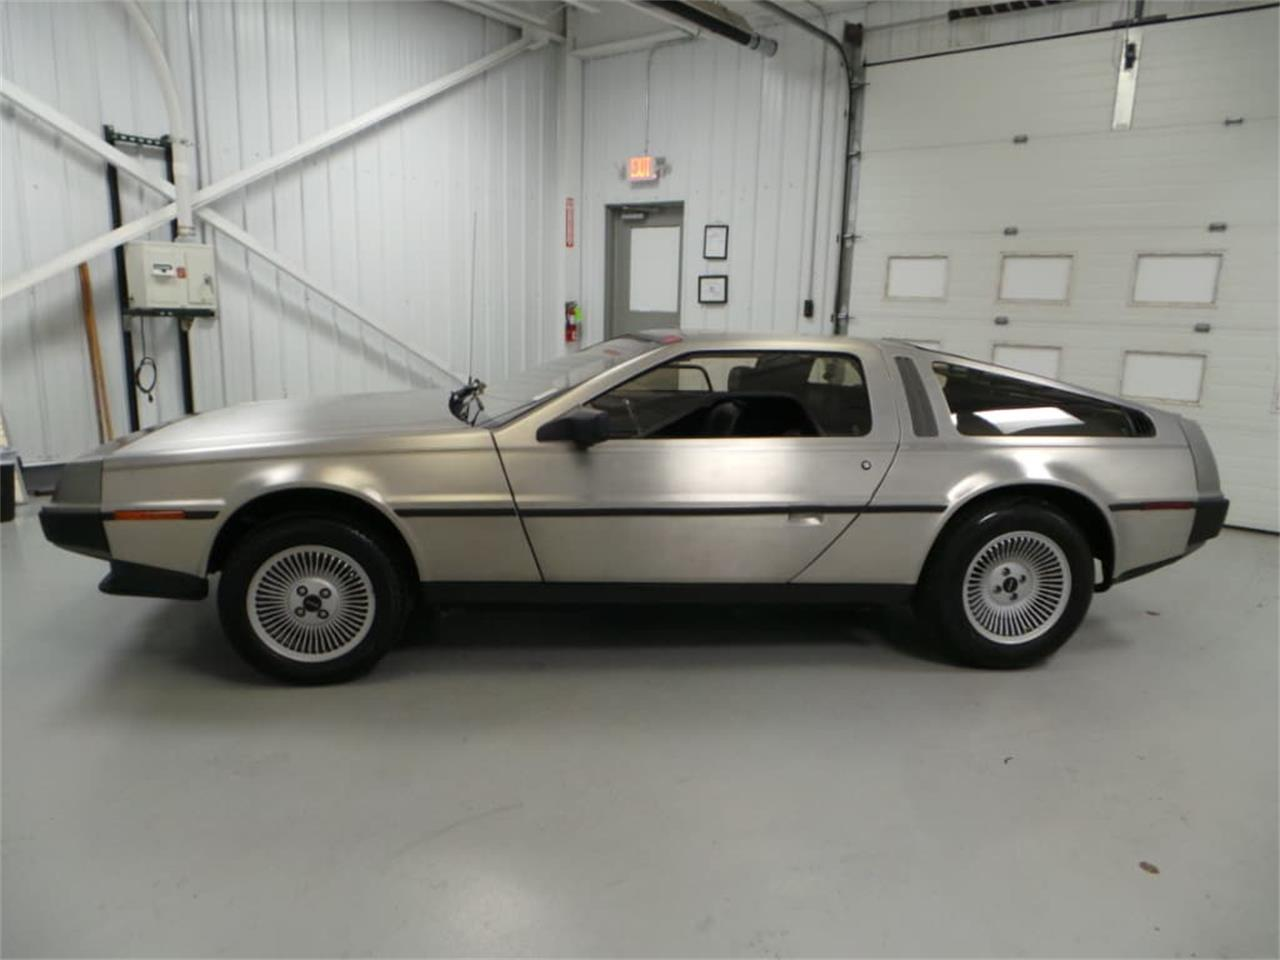 Large Picture of 1981 DeLorean DMC-12 - $42,000.00 Offered by Duncan Imports & Classic Cars - JLCI